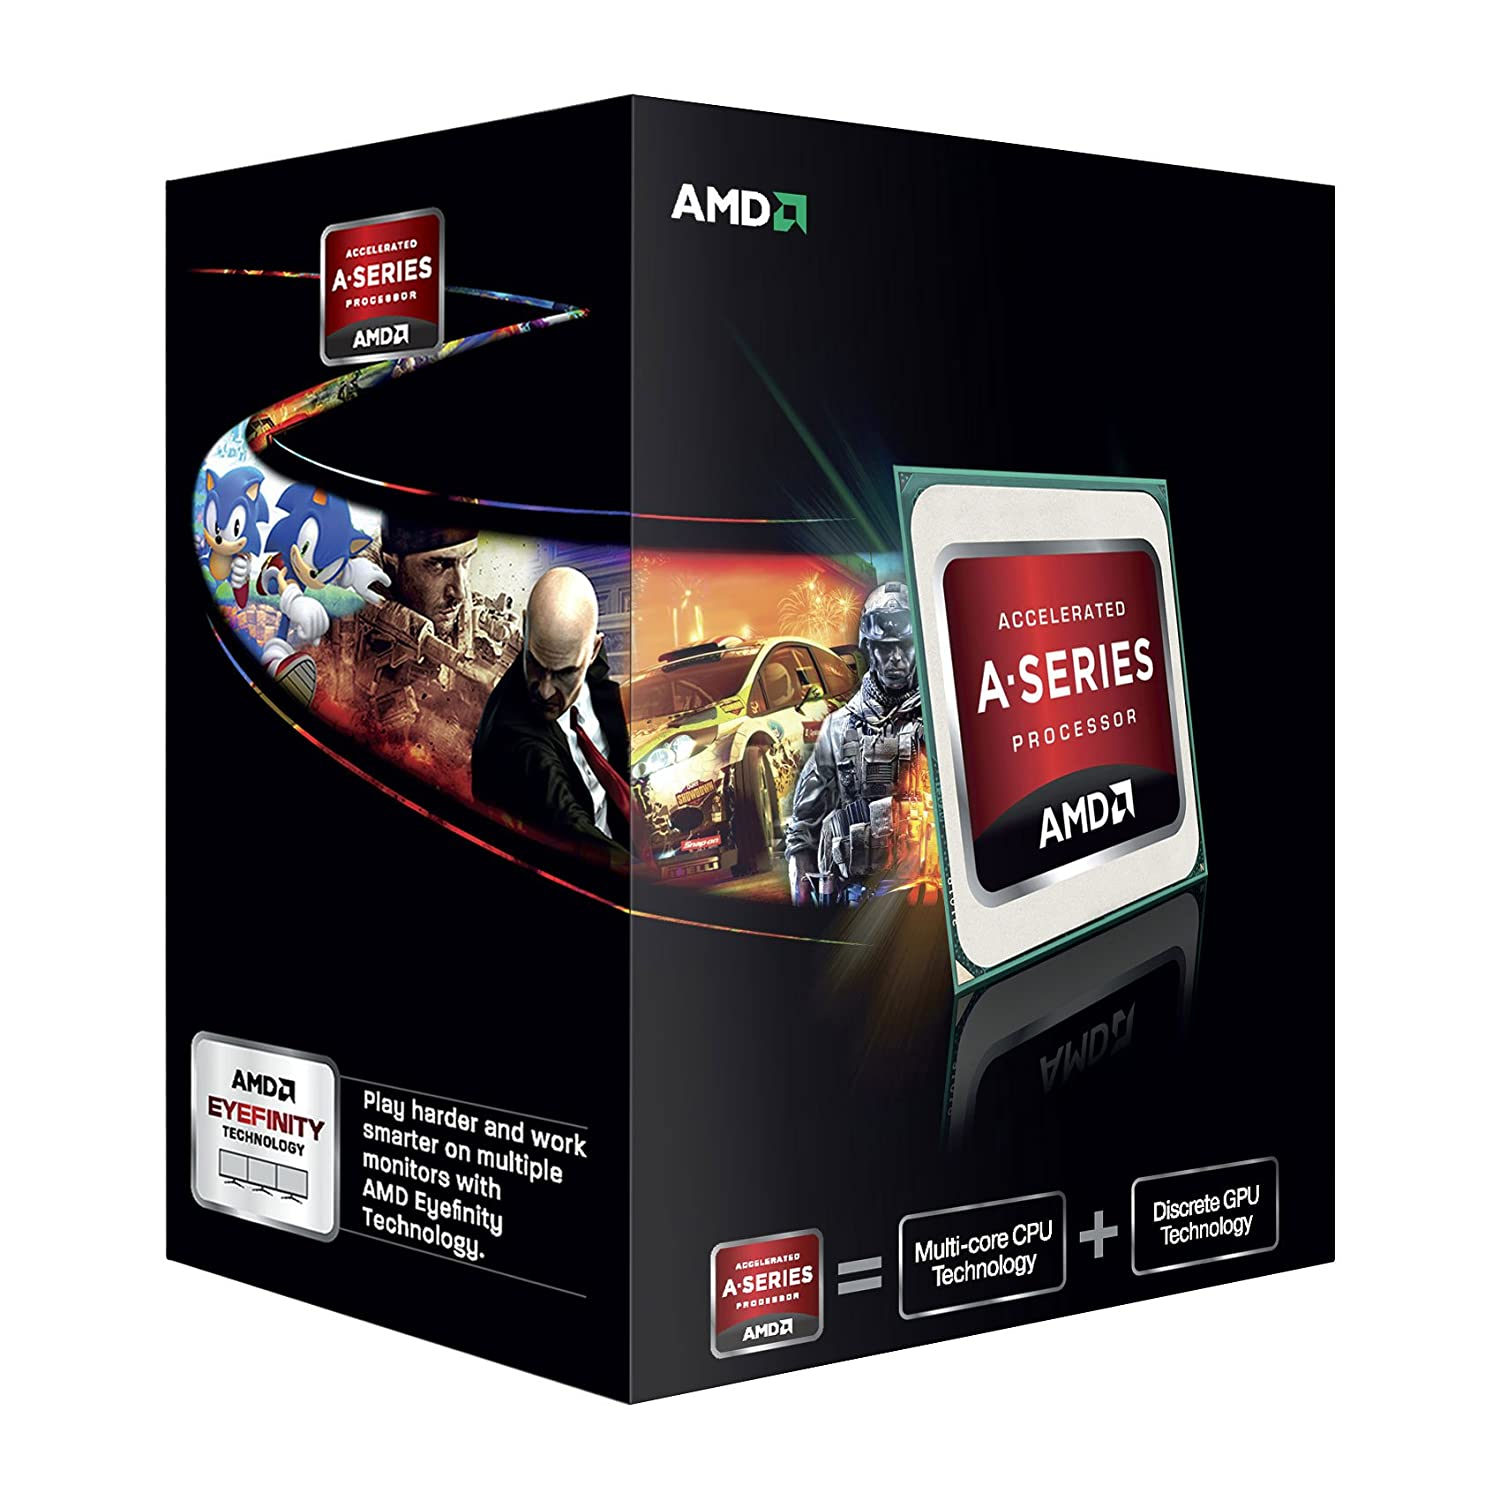 Amd Kaveri A6 7400k Radeon R4 Series 39ghz Cache 2x1mb 65w Socket Intel Core I5 6400 27ghz 6mb Box Lga 1151 Skylake Product Description This New Apu Form Continues To Revolutionize The Microprocessor Market It Is First With Hsa Hetrogenous Systems